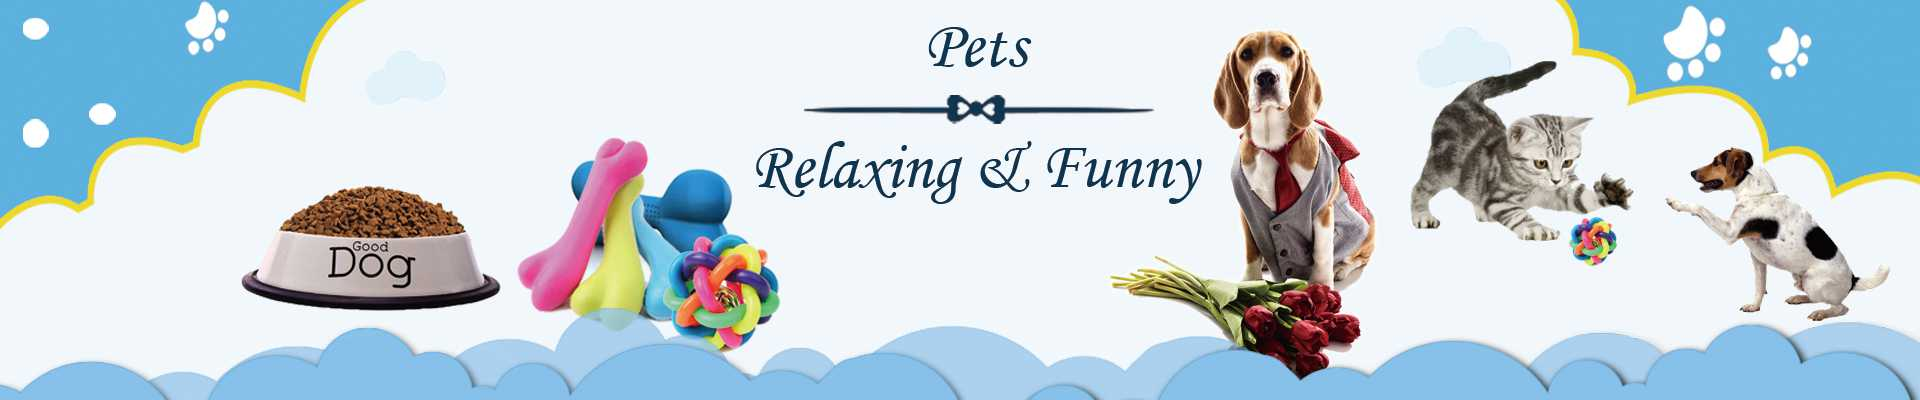 Pets product introduction